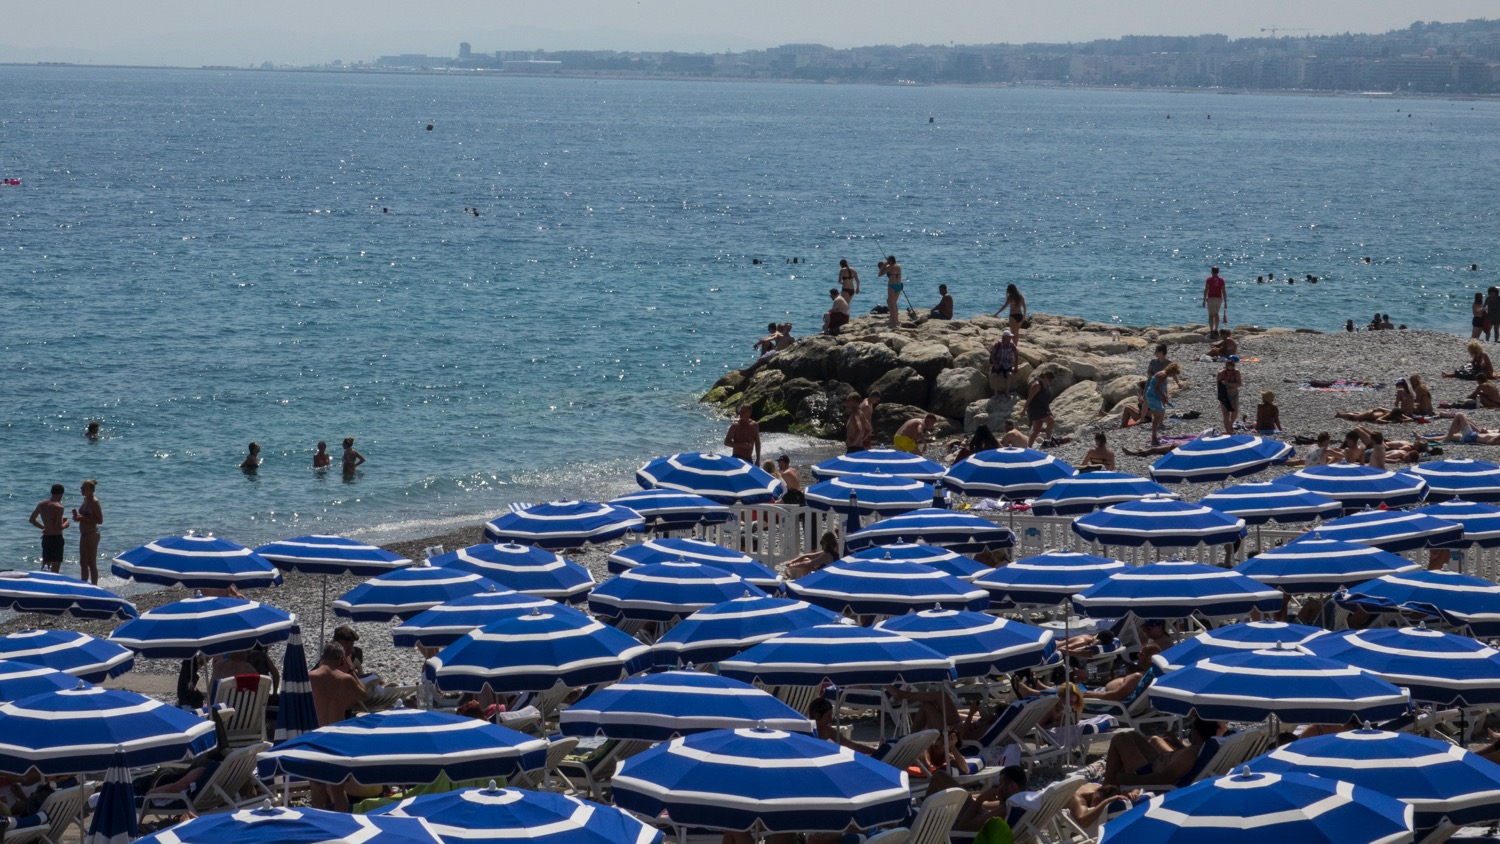 A look out across one of the private beach clubs, over the blue waters of the bay.